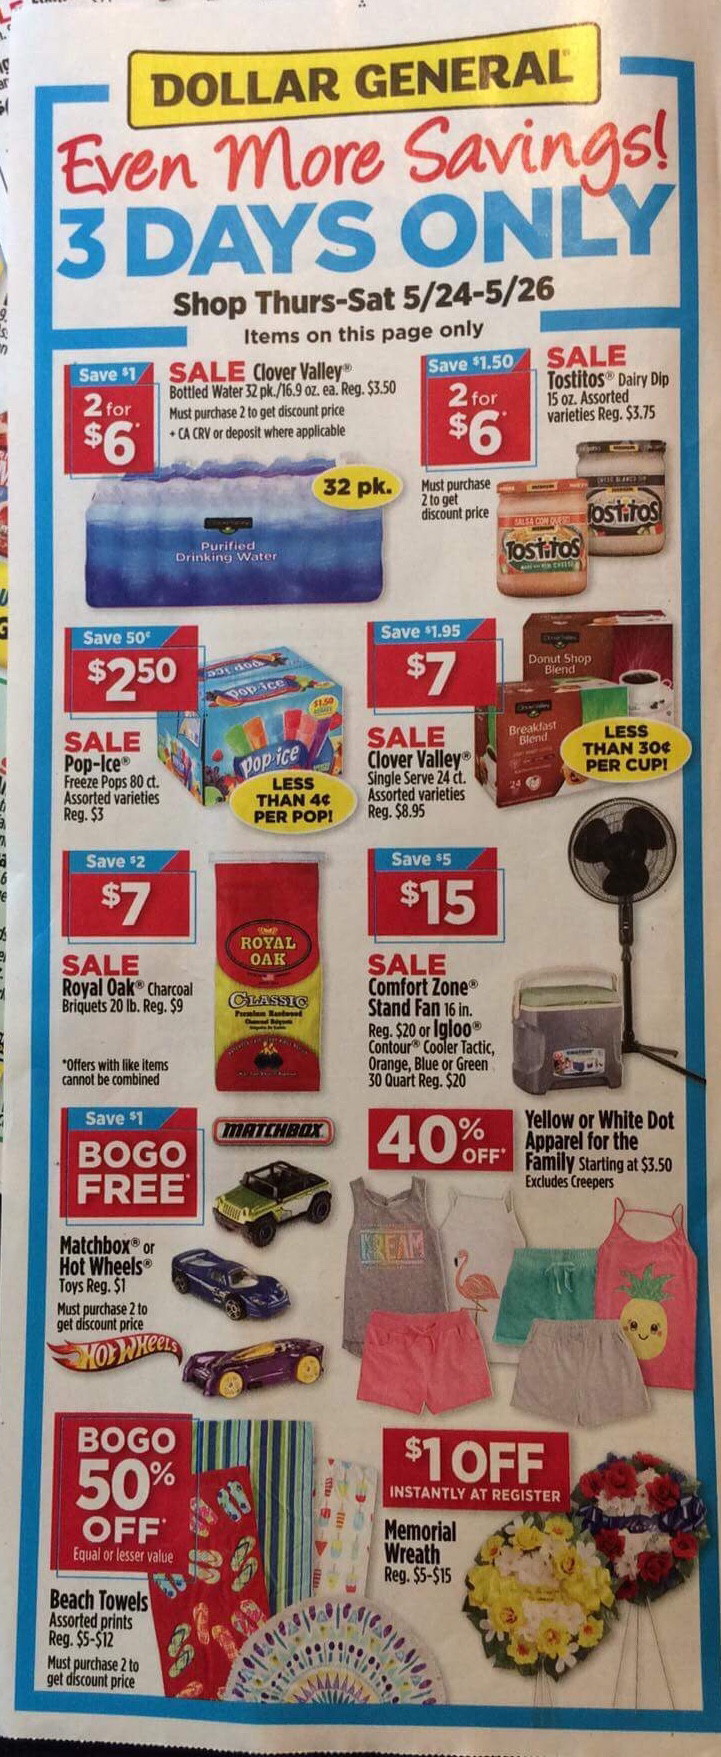 Dollar General Early Ad Scans - Free Printable Pringles Coupons